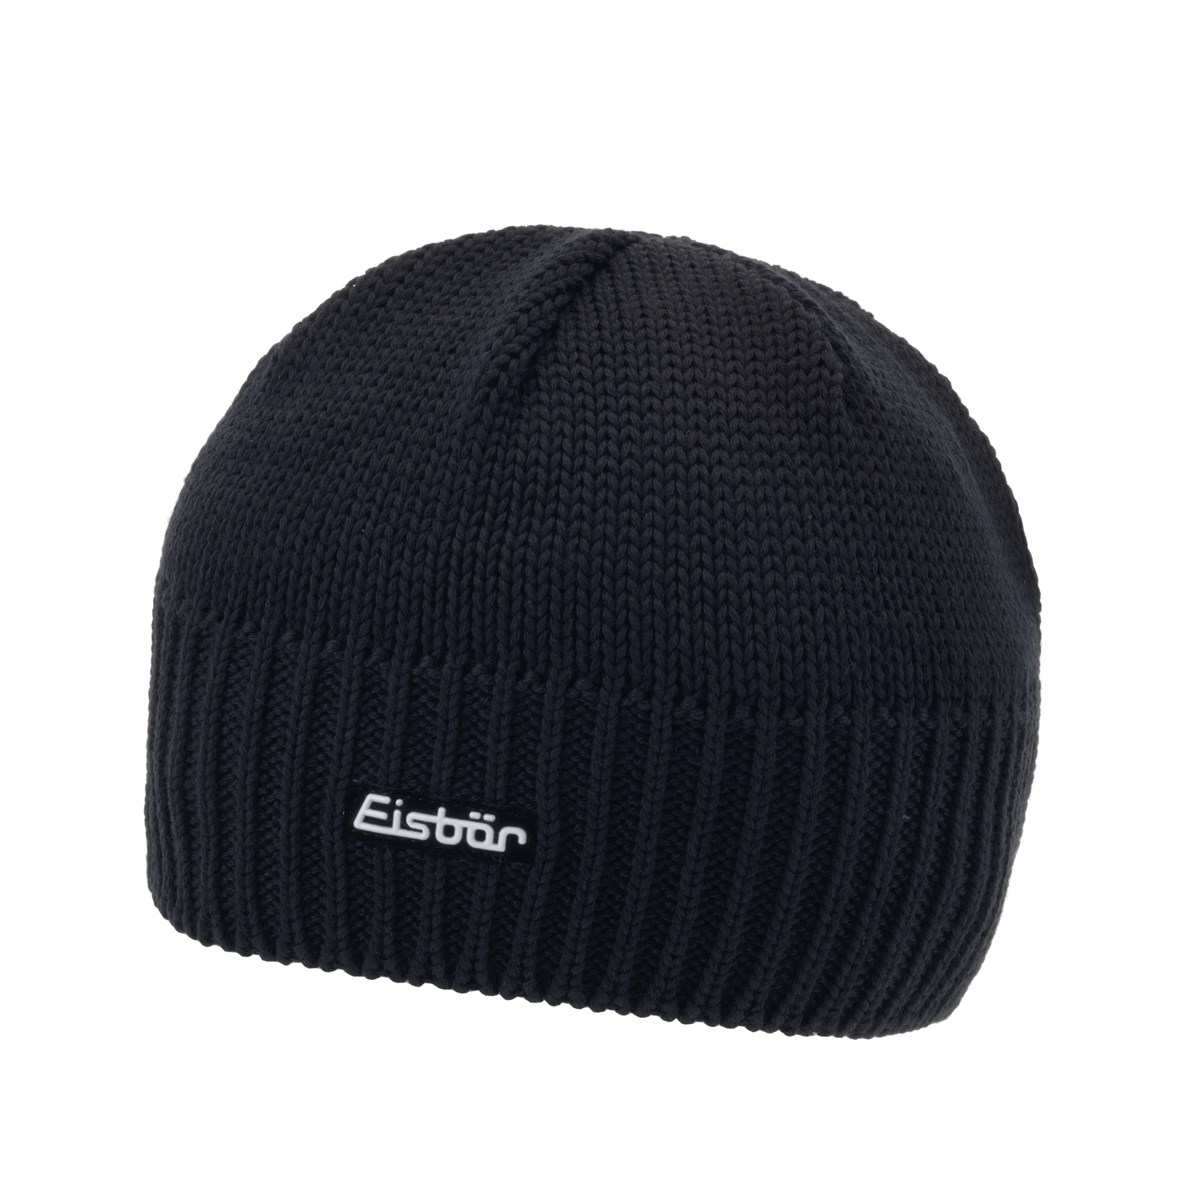 7caf0a8b4d7 Eisbar Trop Merino XL Hat Black. 0 (Be the first to add a review!)